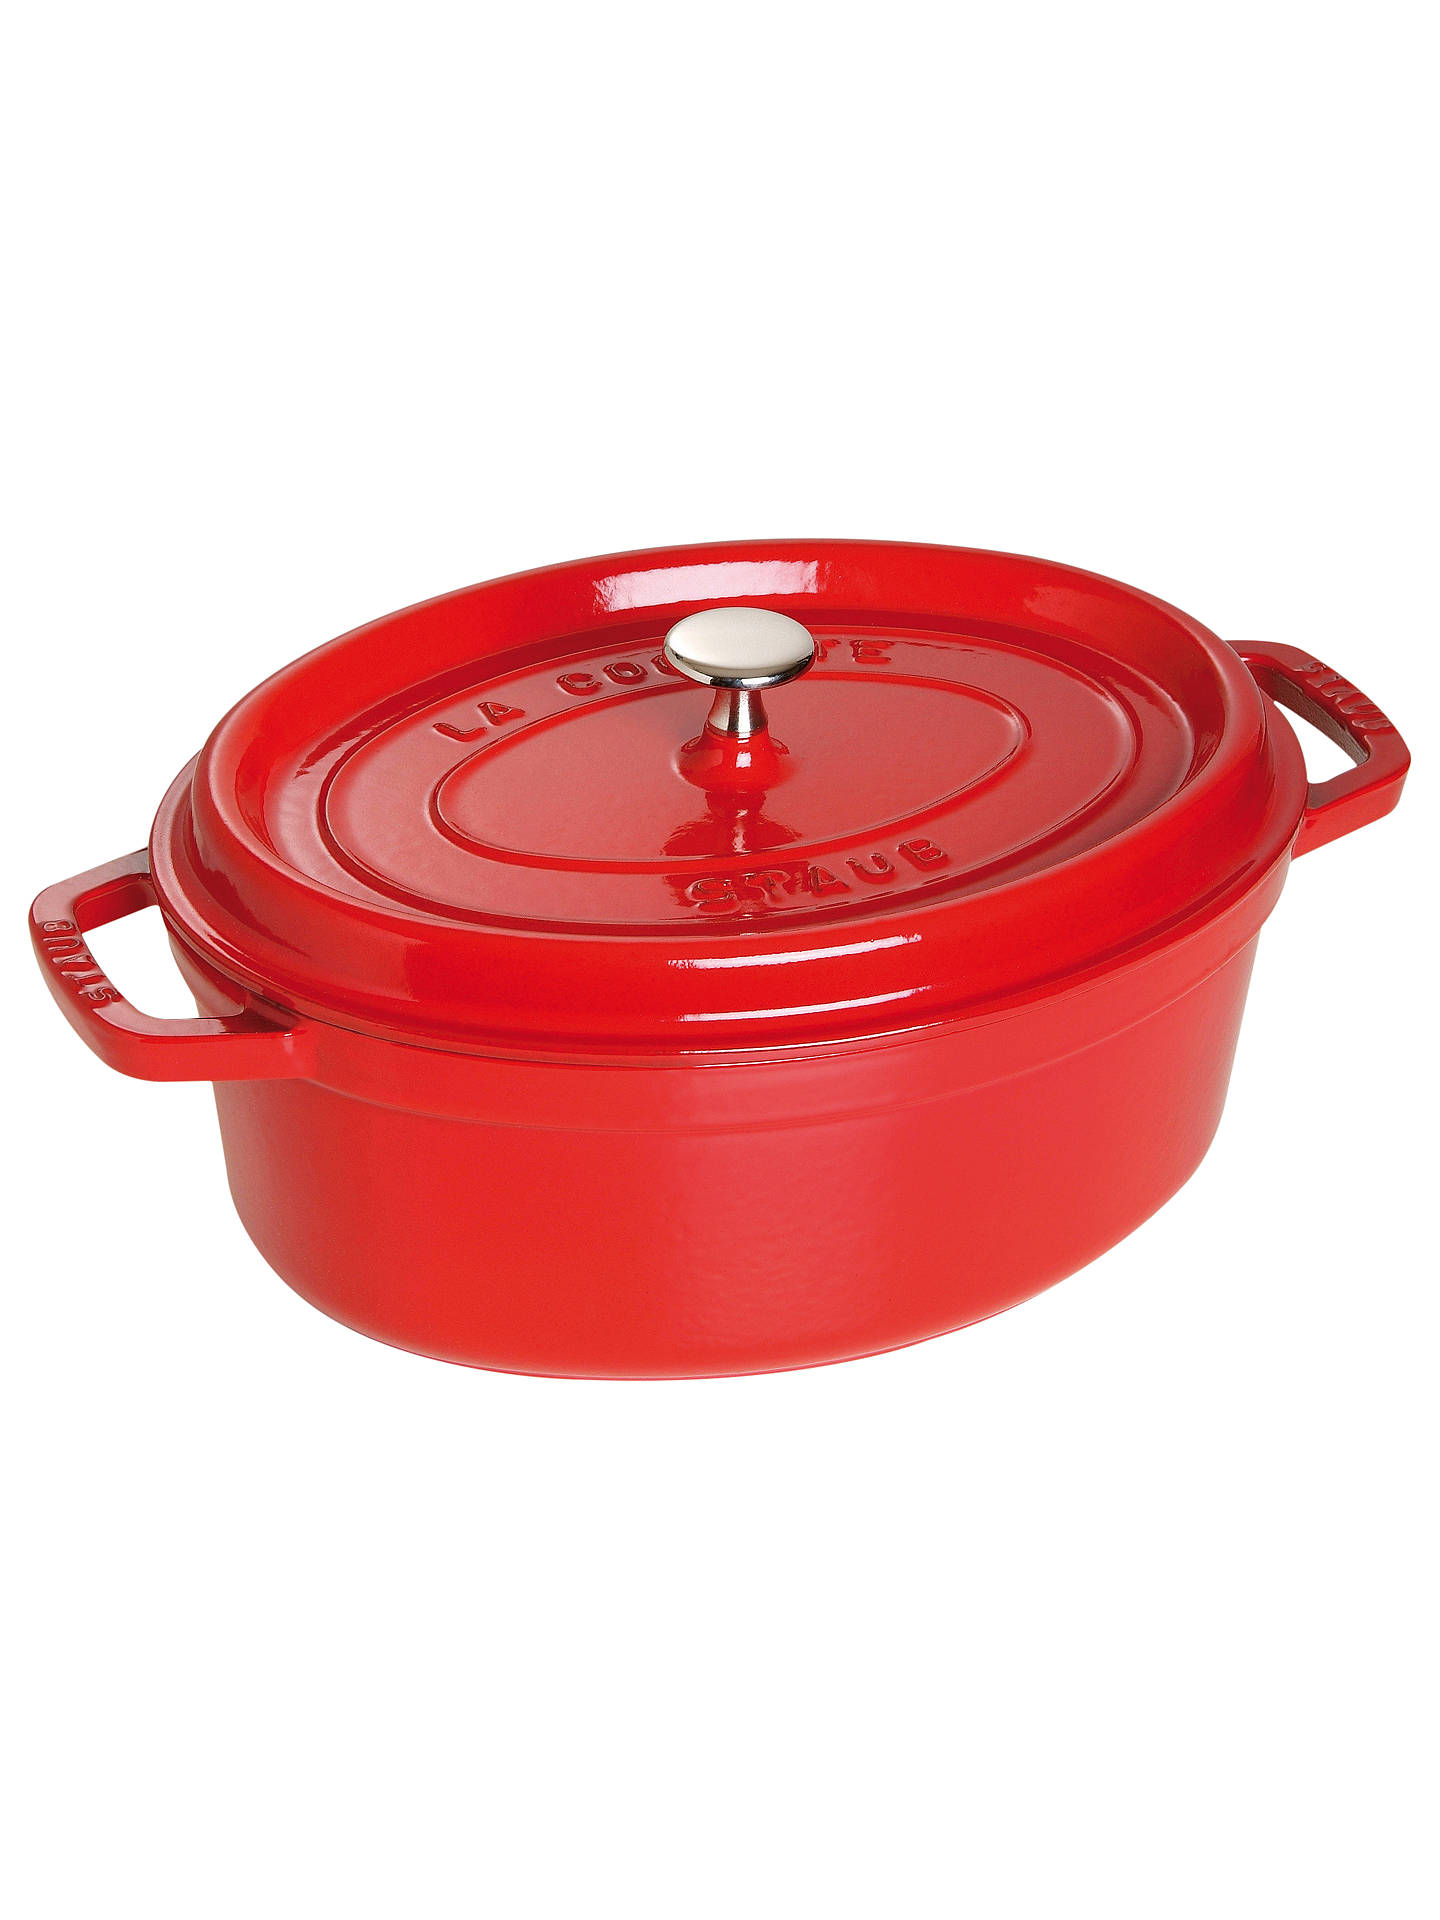 Buy STAUB Cocotte Oval Cast Iron Casserole, Cherry, 31cm Online at johnlewis.com